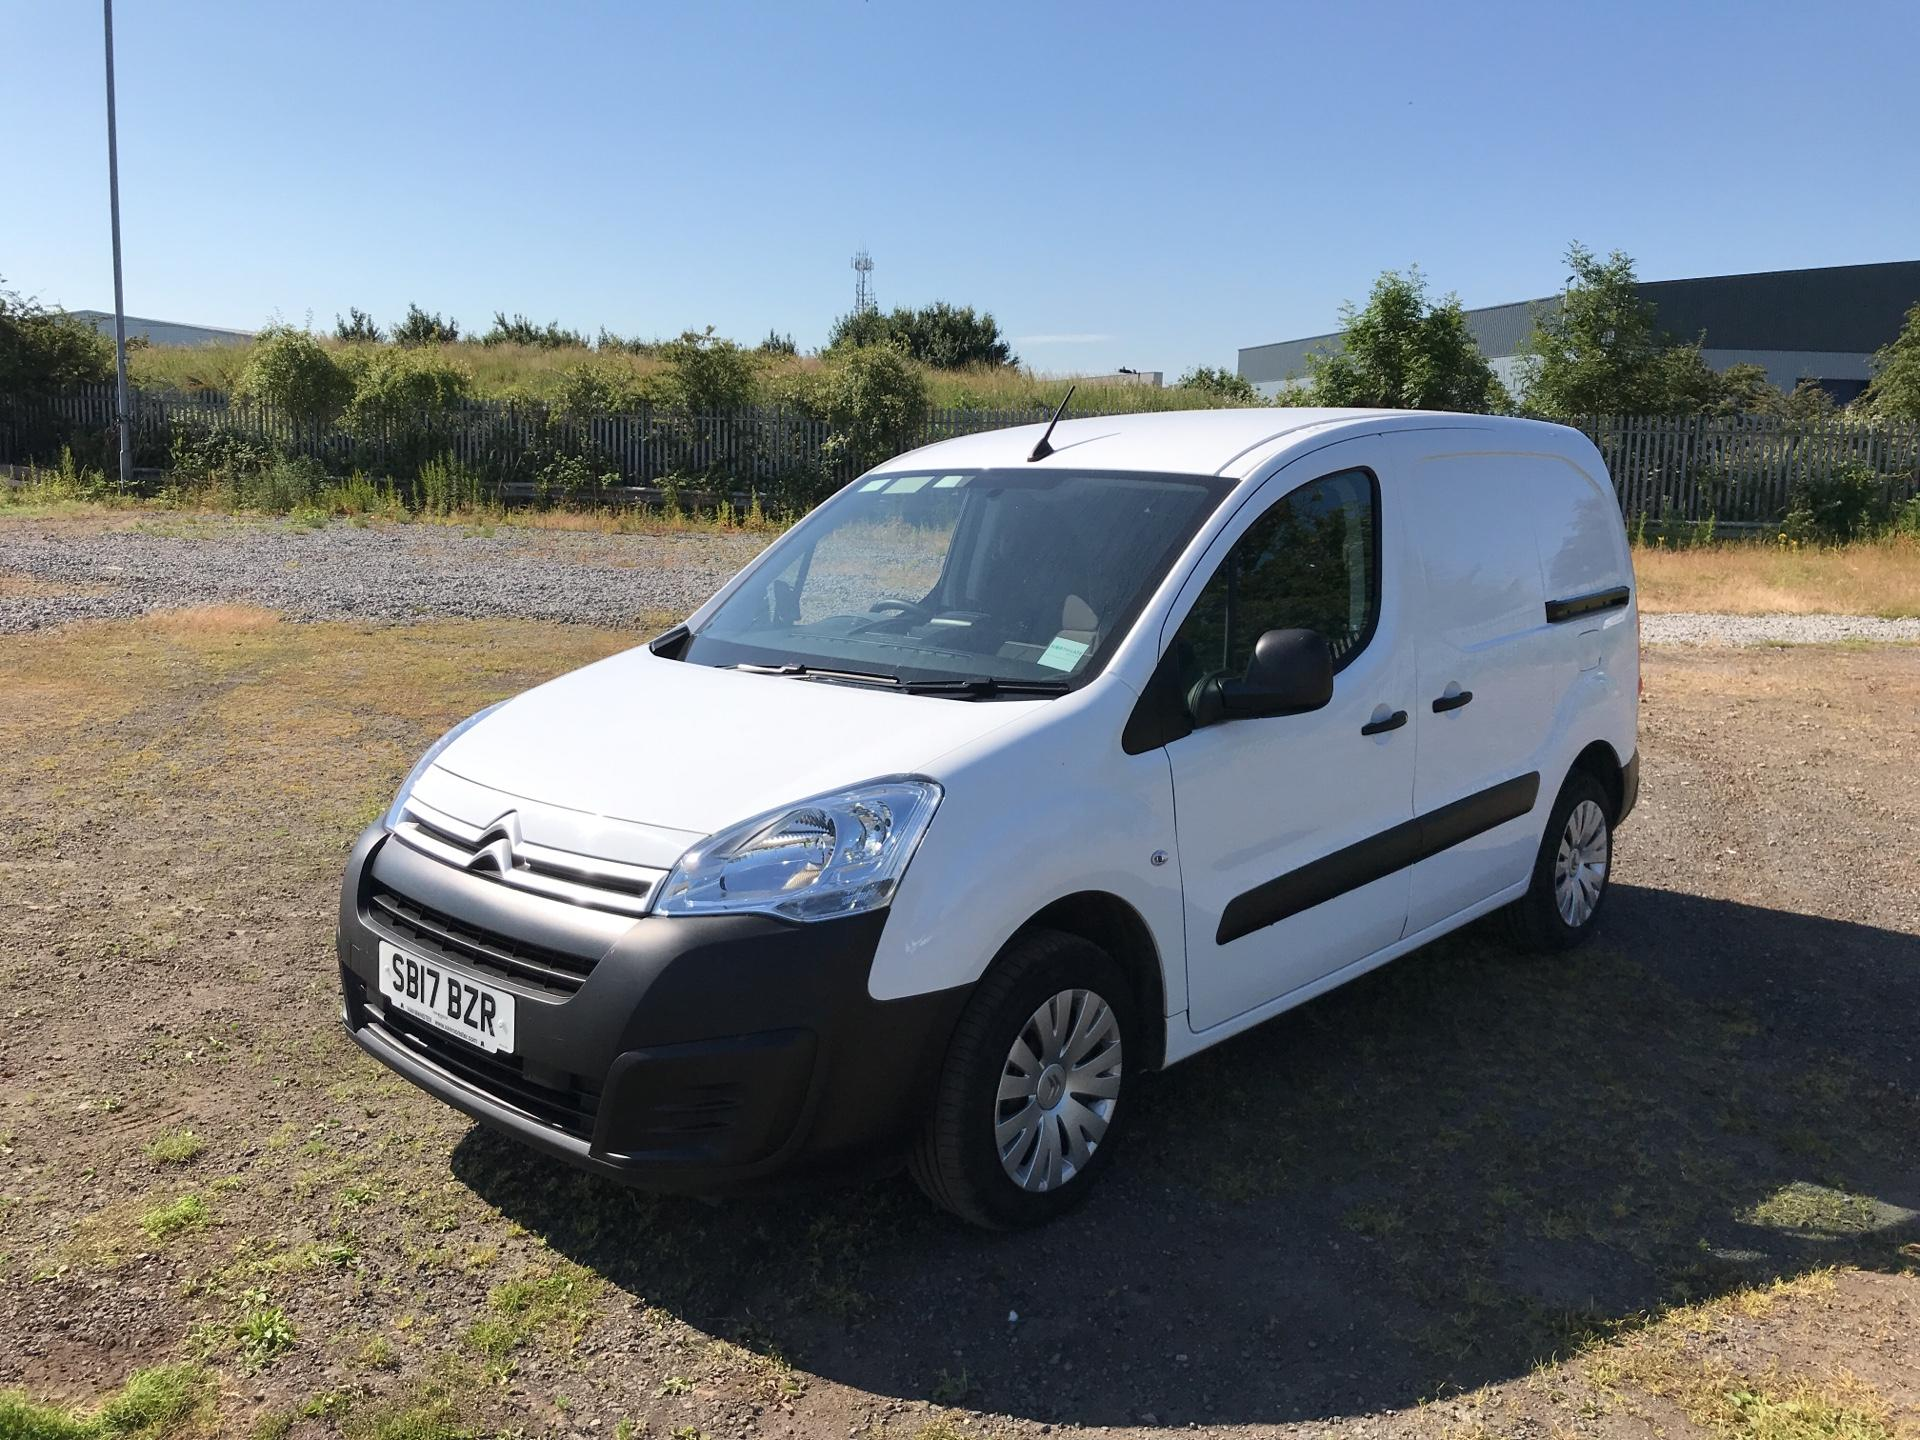 2017 Citroen Berlingo L1 1.6 Bluehdi 625Kg Enterprise 75Ps EURO 4/5 (SB17BZR) Image 7